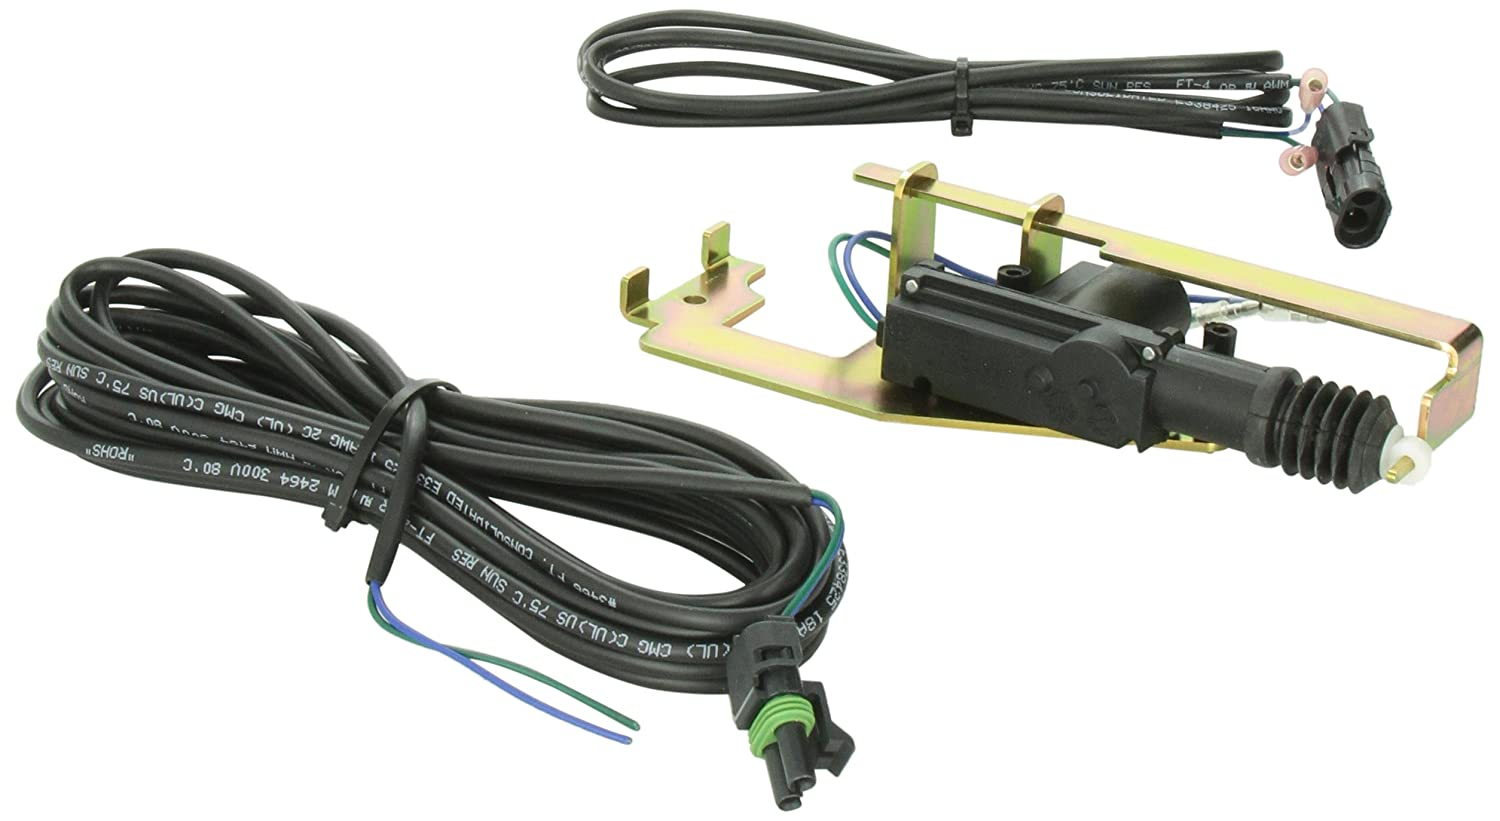 Pop & Lock PL8200 Power Tailgate Lock for Ford